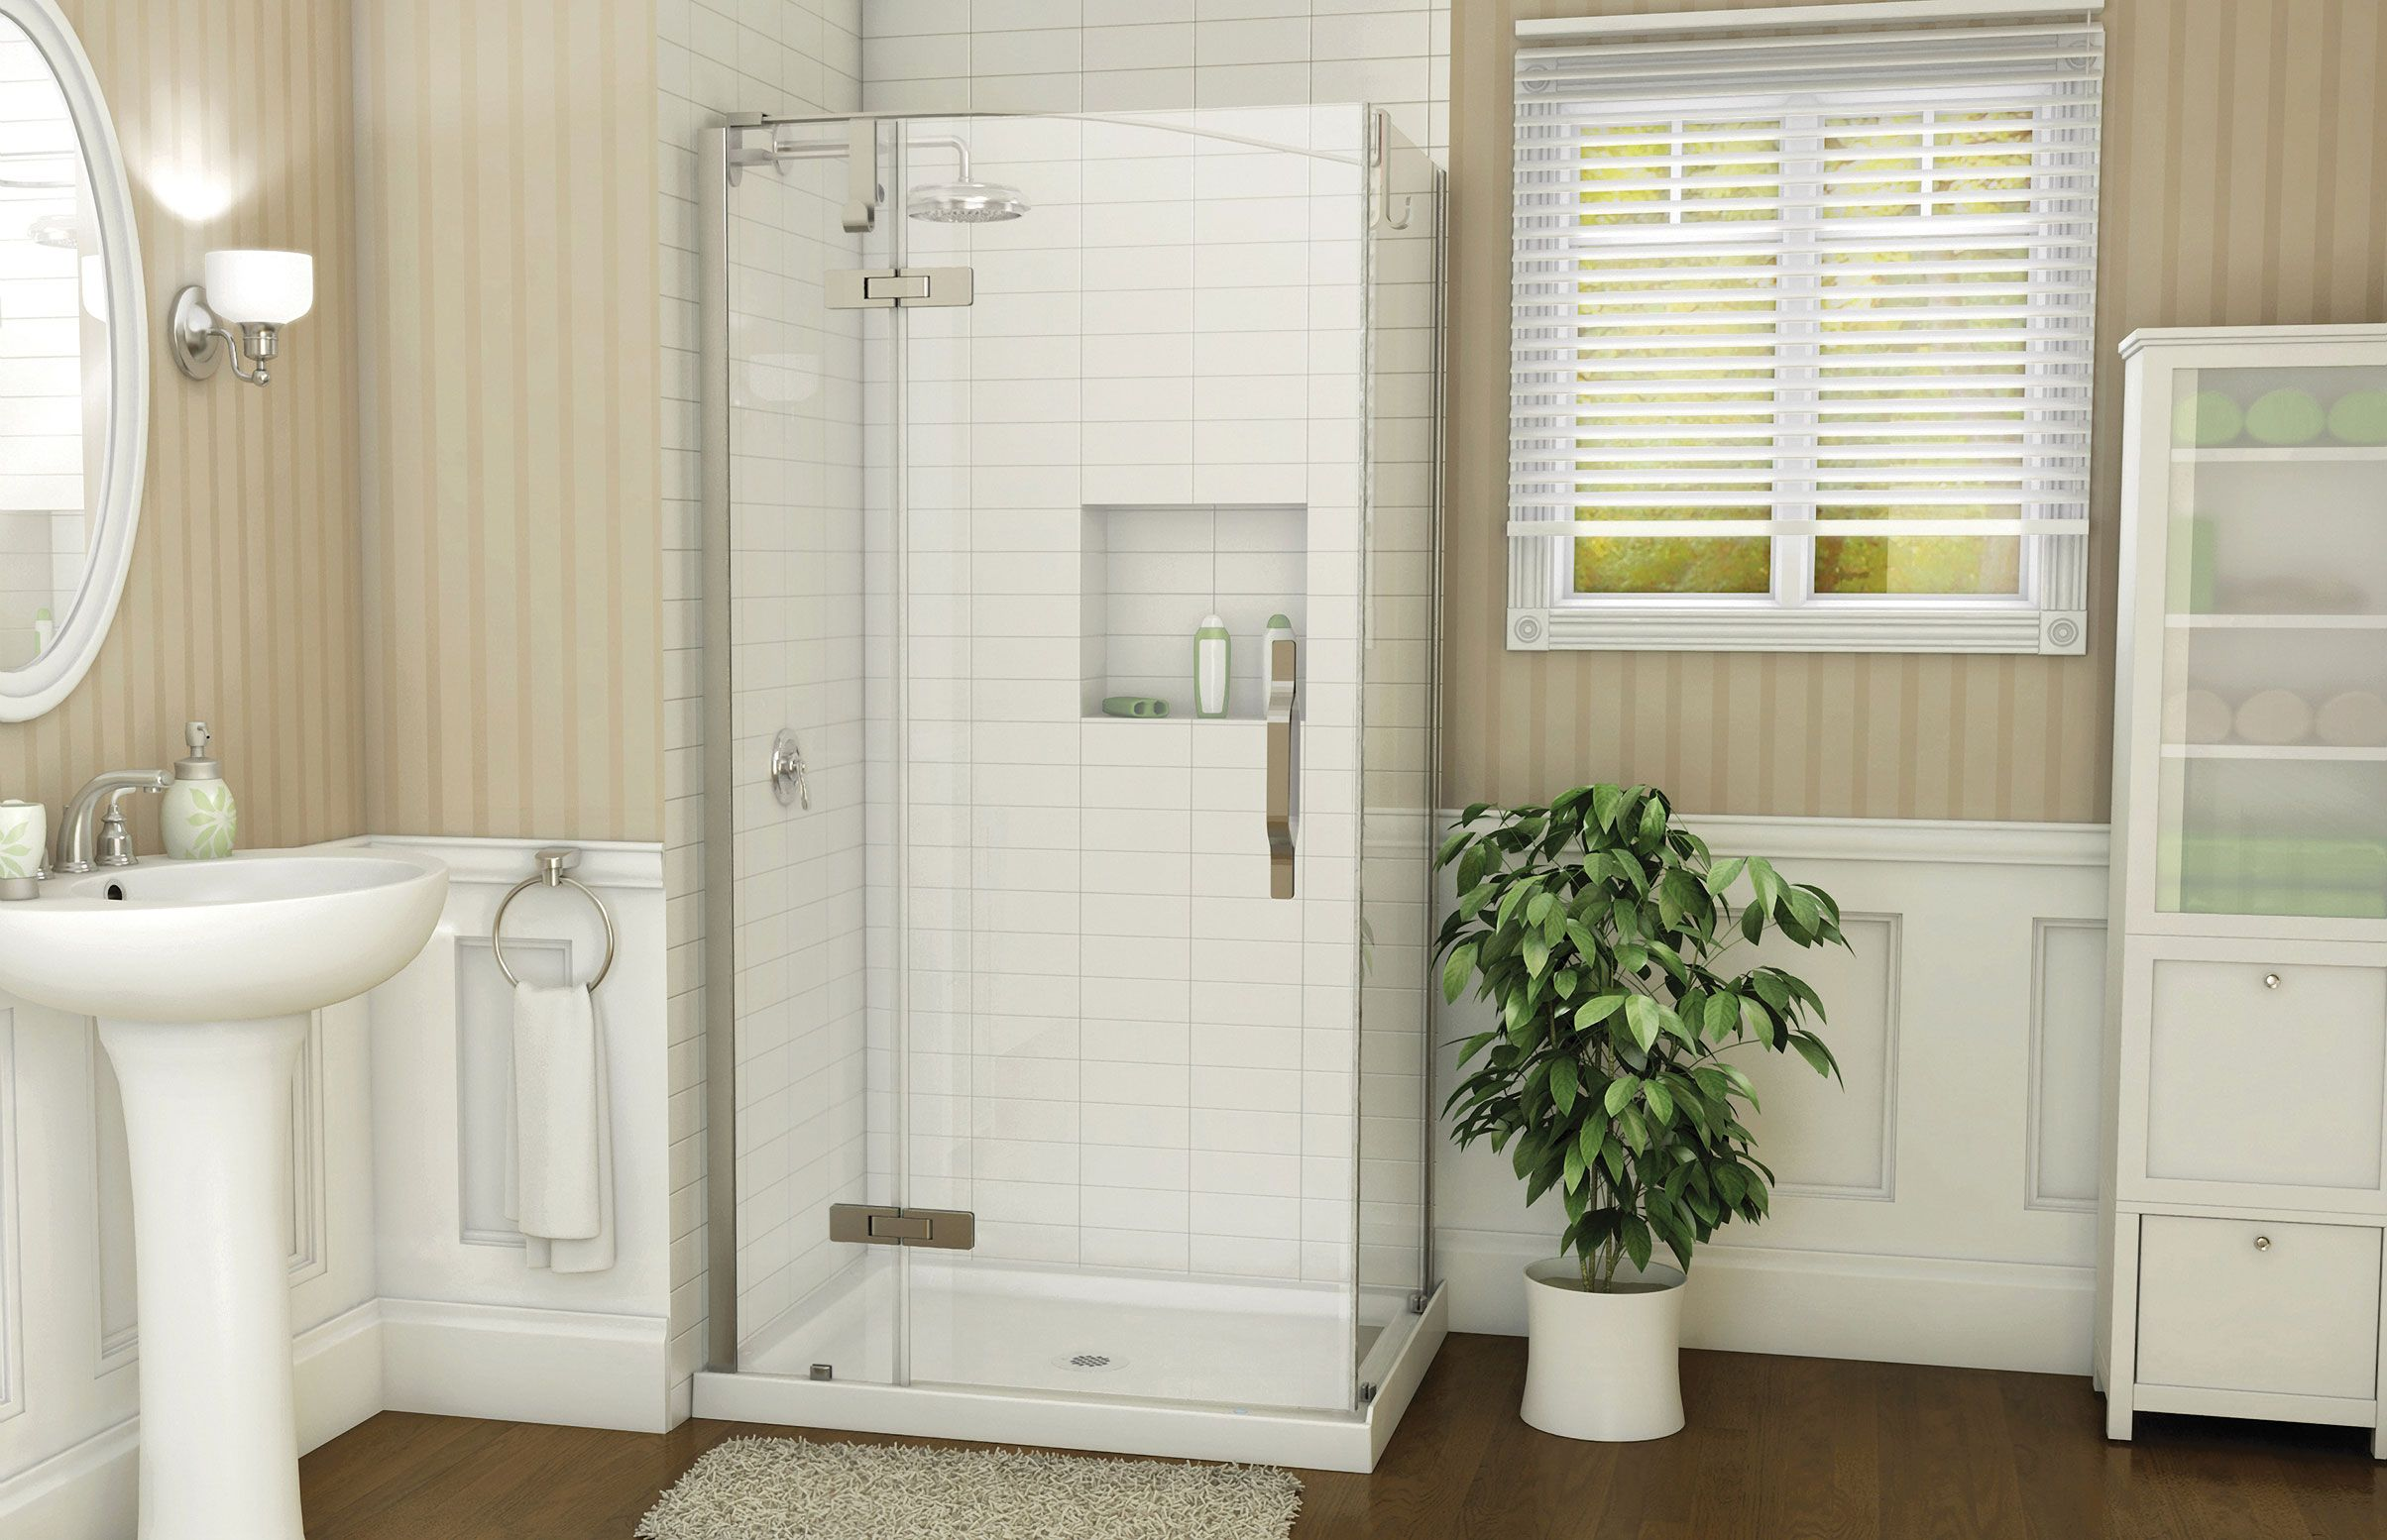 corner shower kits with walls. Shop Maax MAAX Shower solution Azure 4234 Rectangular corner shower kit at  Lowe s Canada Find our selection of stalls enclosures the lowest Corner Advanta by base and glass are a